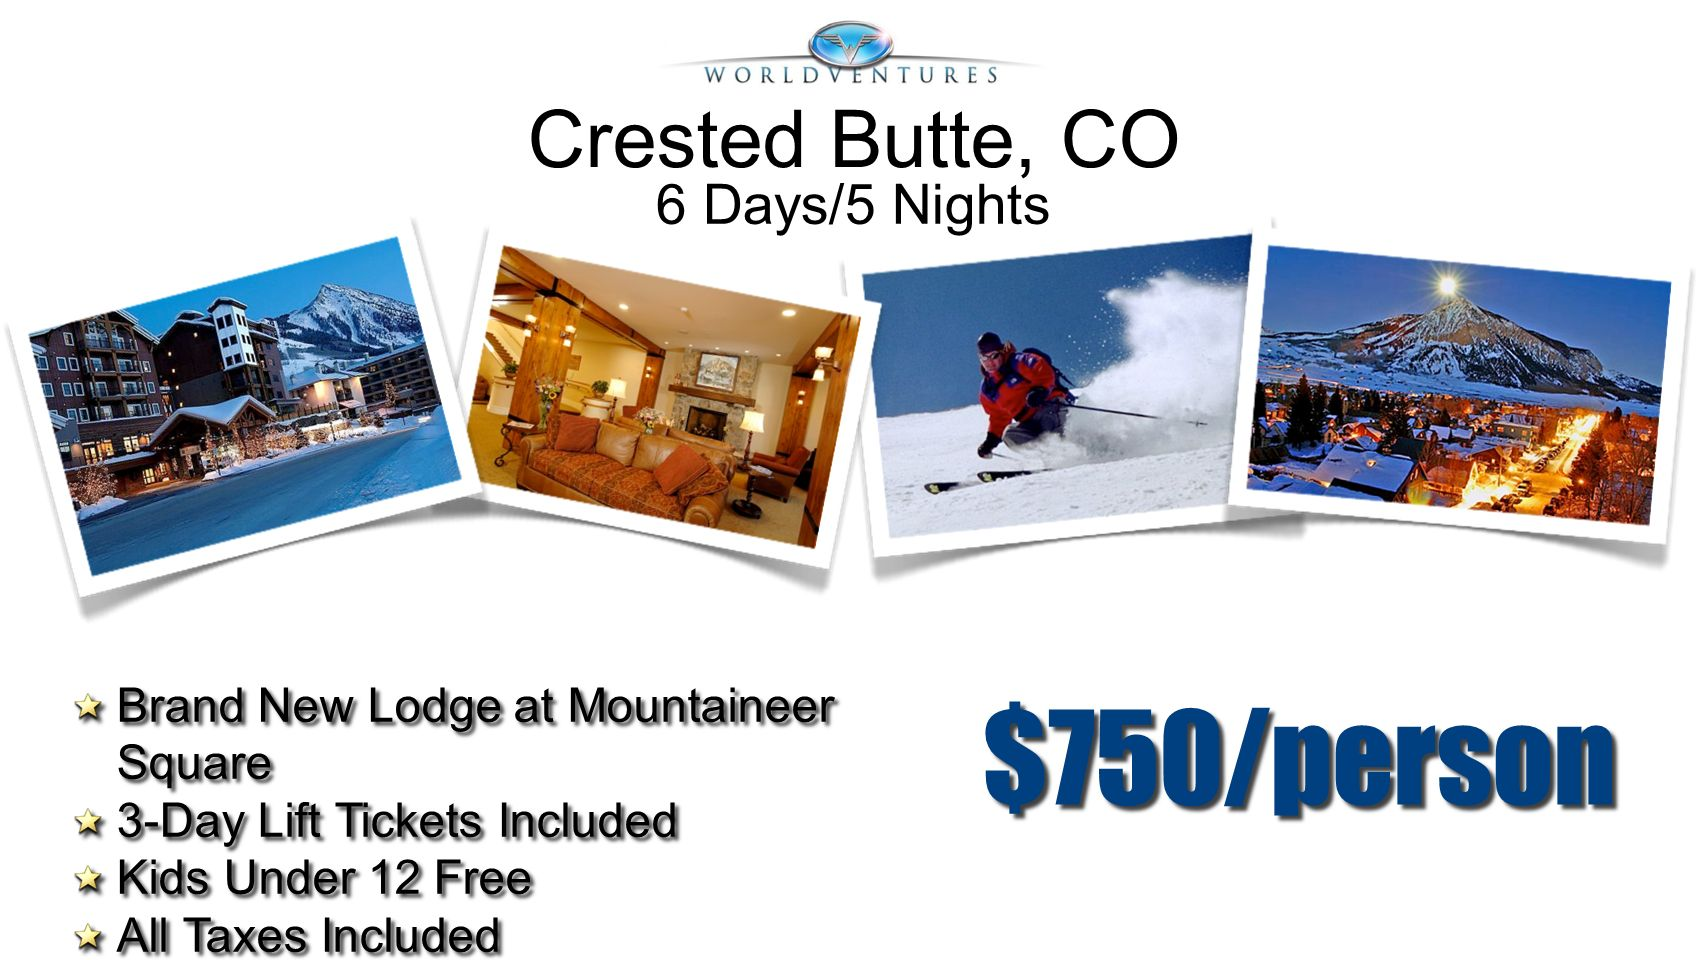 $750/person Brand New Lodge at Mountaineer Square 3-Day Lift Tickets Included Kids Under 12 Free All Taxes Included Brand New Lodge at Mountaineer Squ